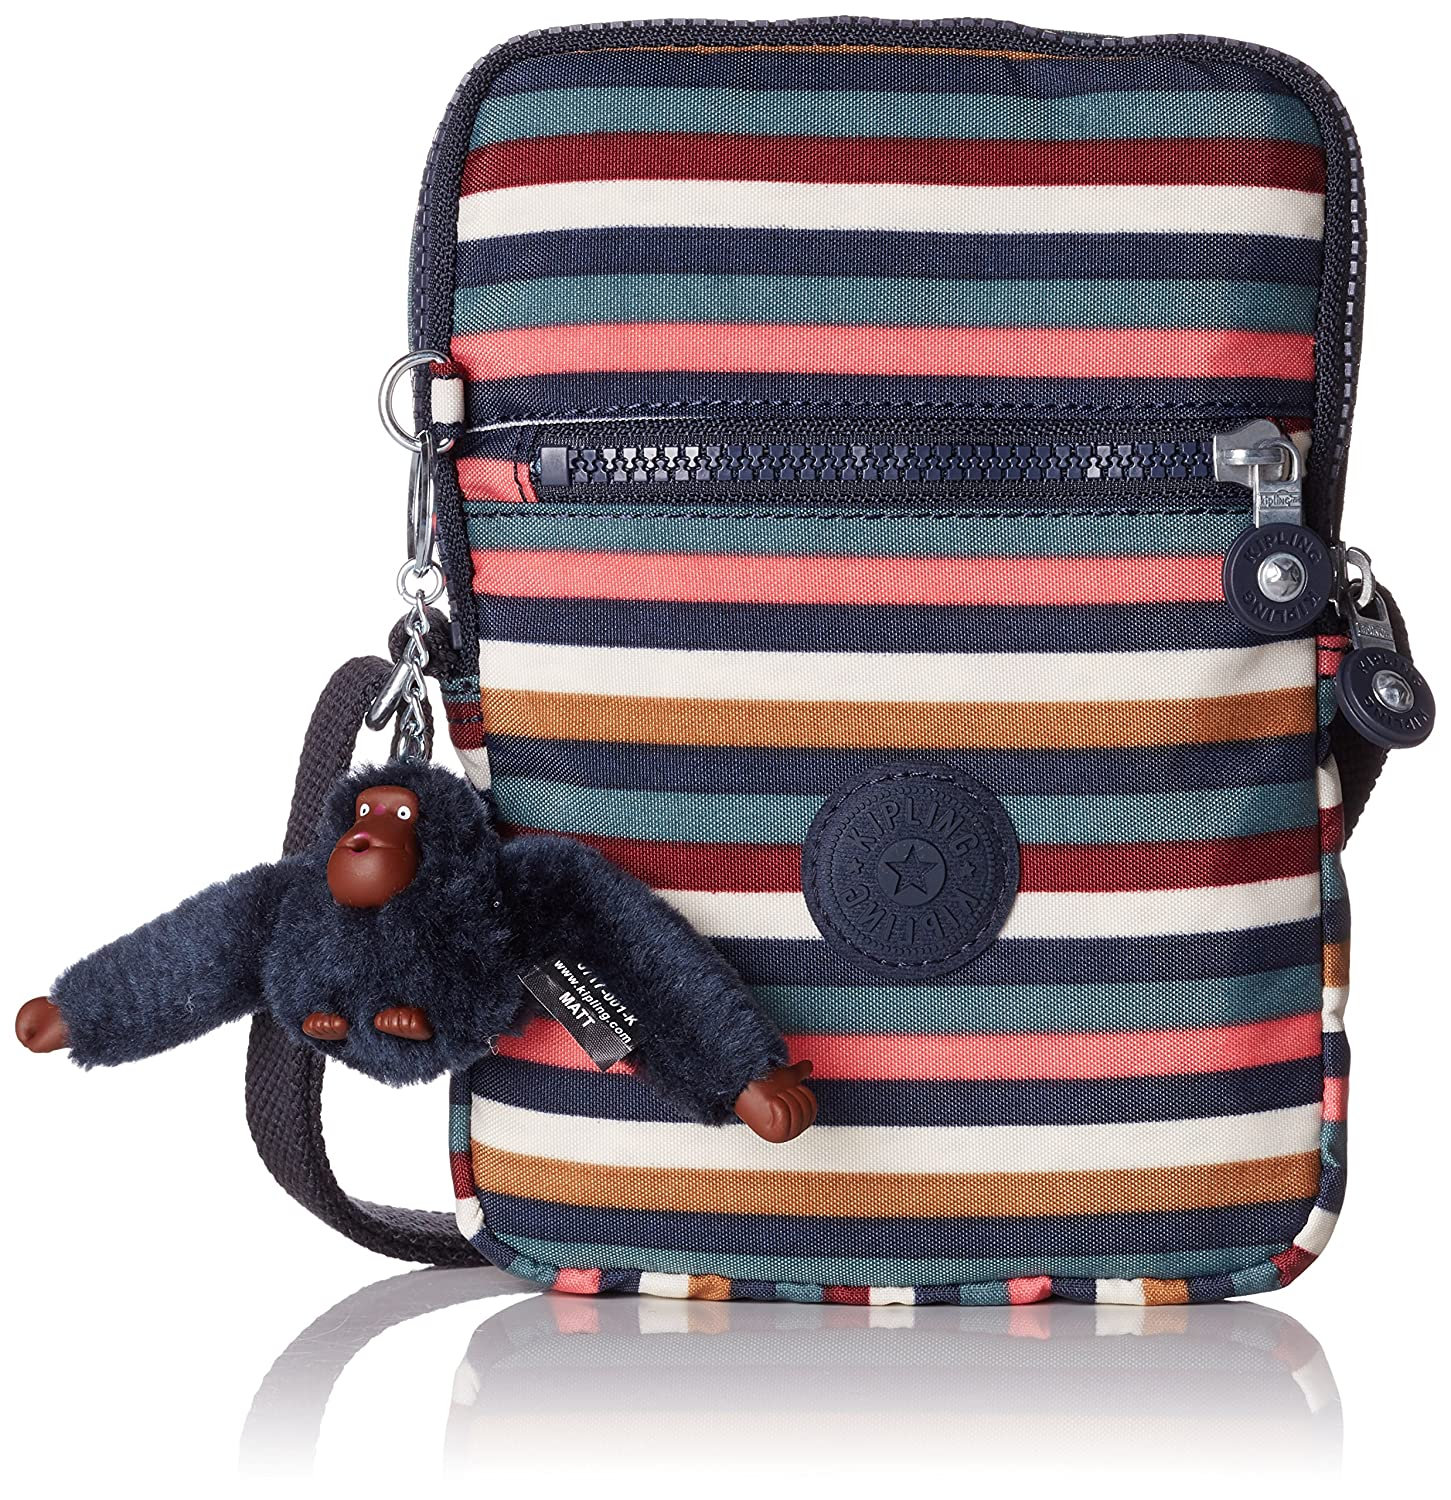 3483b43f9a6 Amazon.com | Kipling ESSYLA Messenger Bag, 21 cm, 0.5 liters, Multicolour  (Multi Stripes) | Messenger Bags